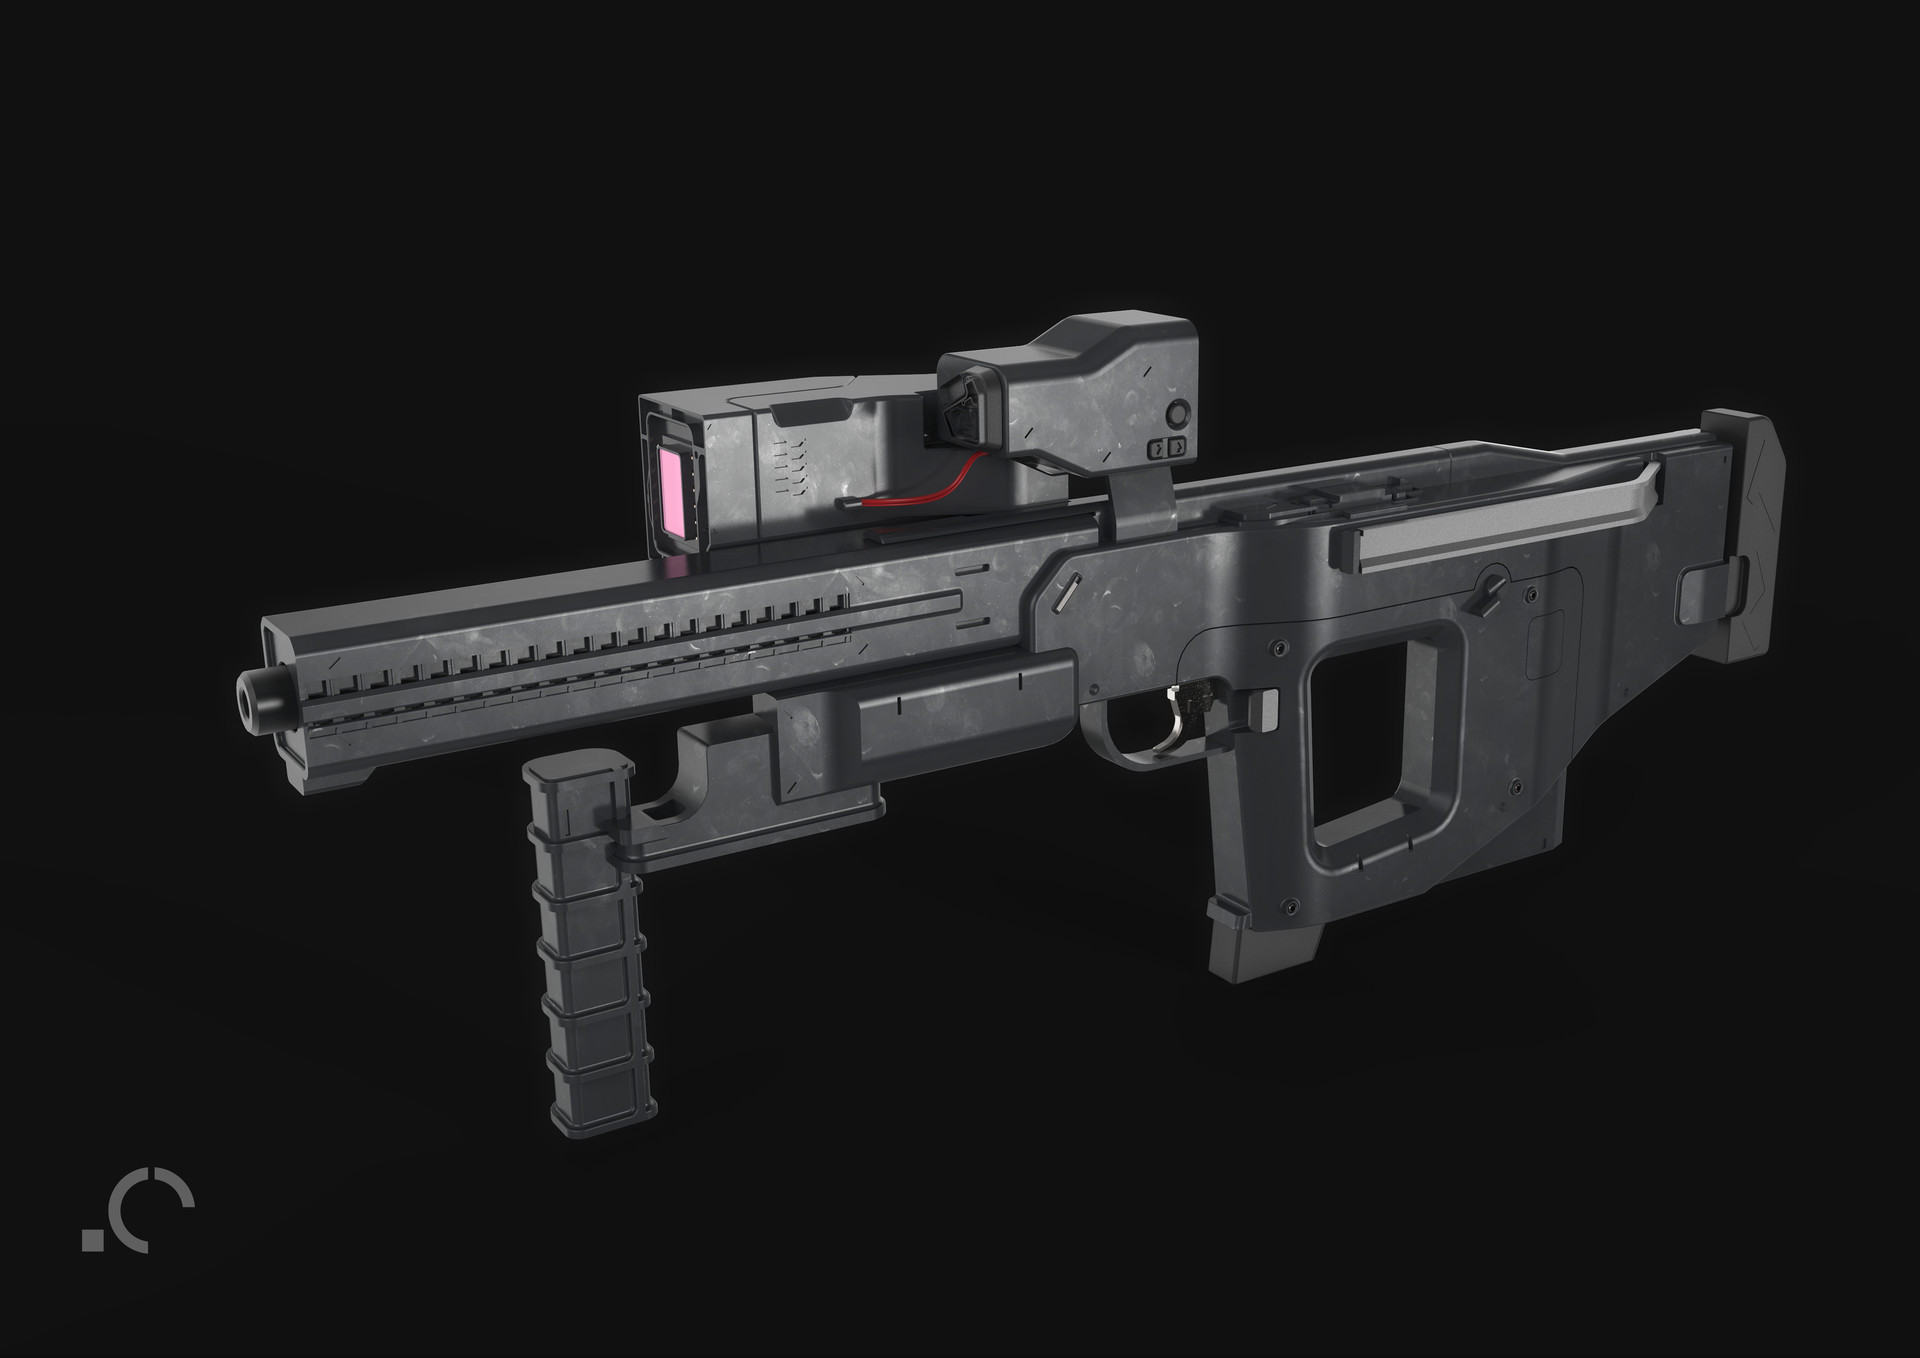 Chen liang concept weapon 01